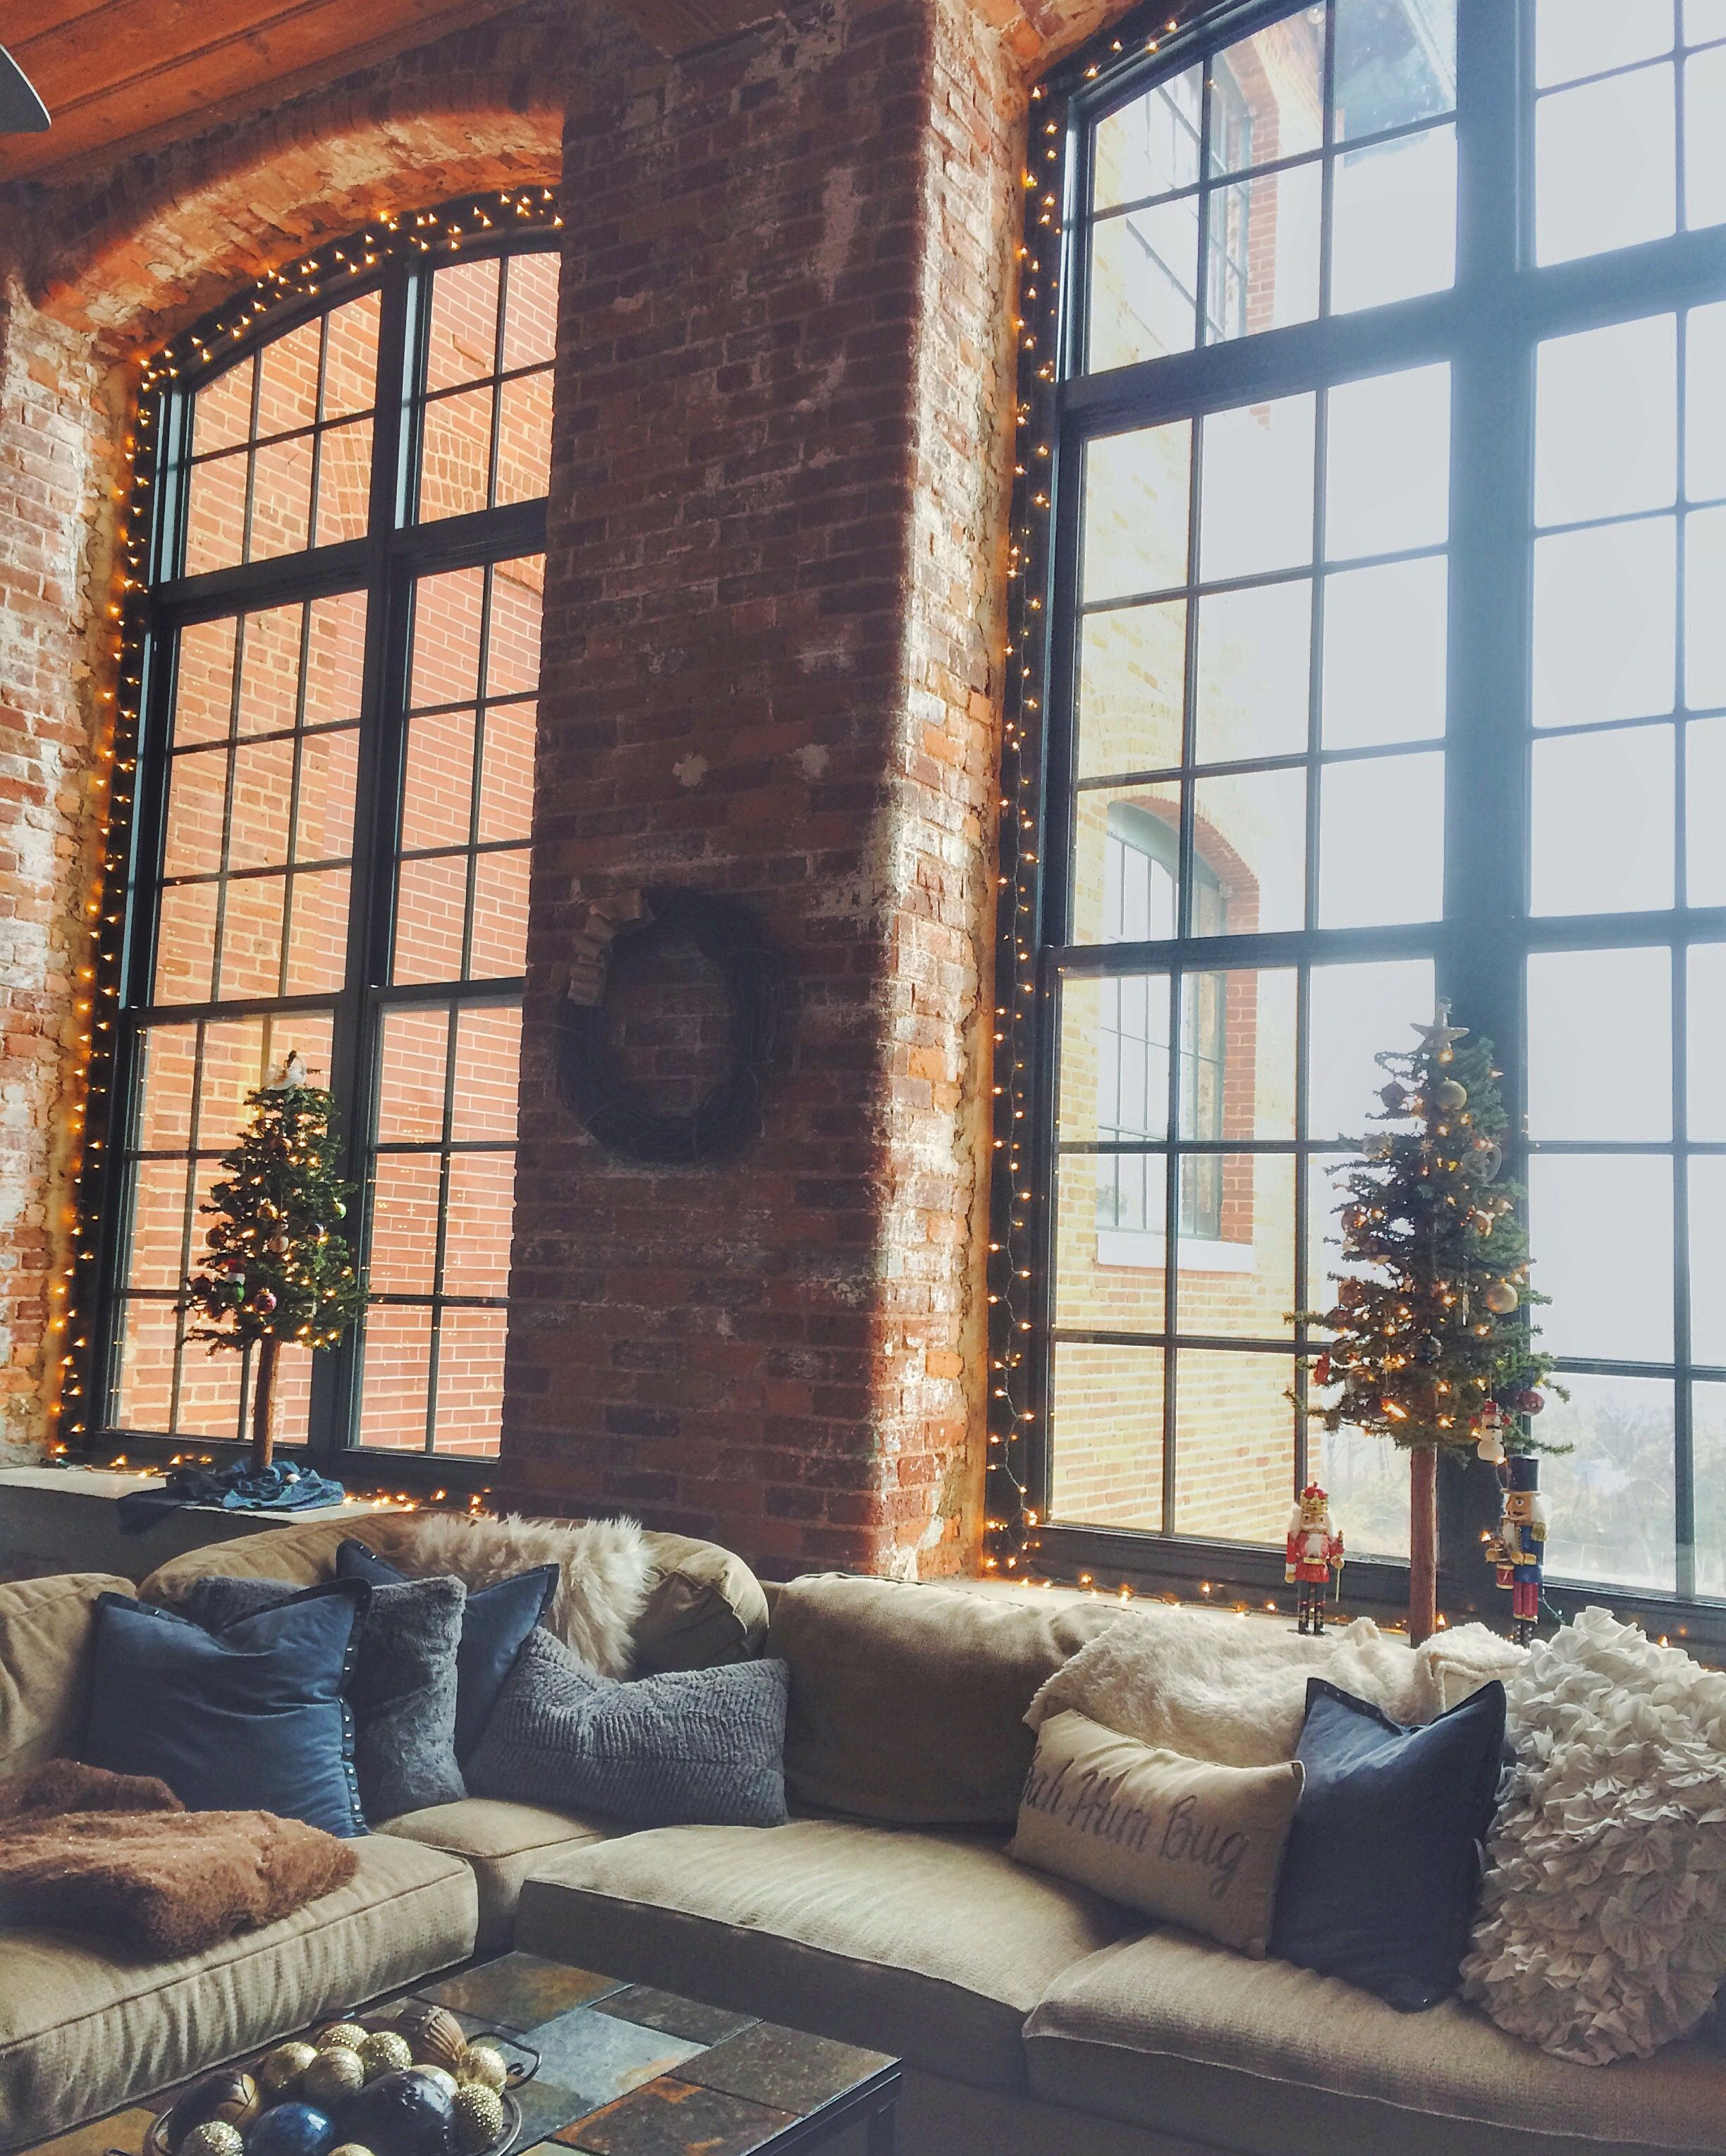 Cozy Loft Style Apartment Christmas Decor Exposed Brick Wall